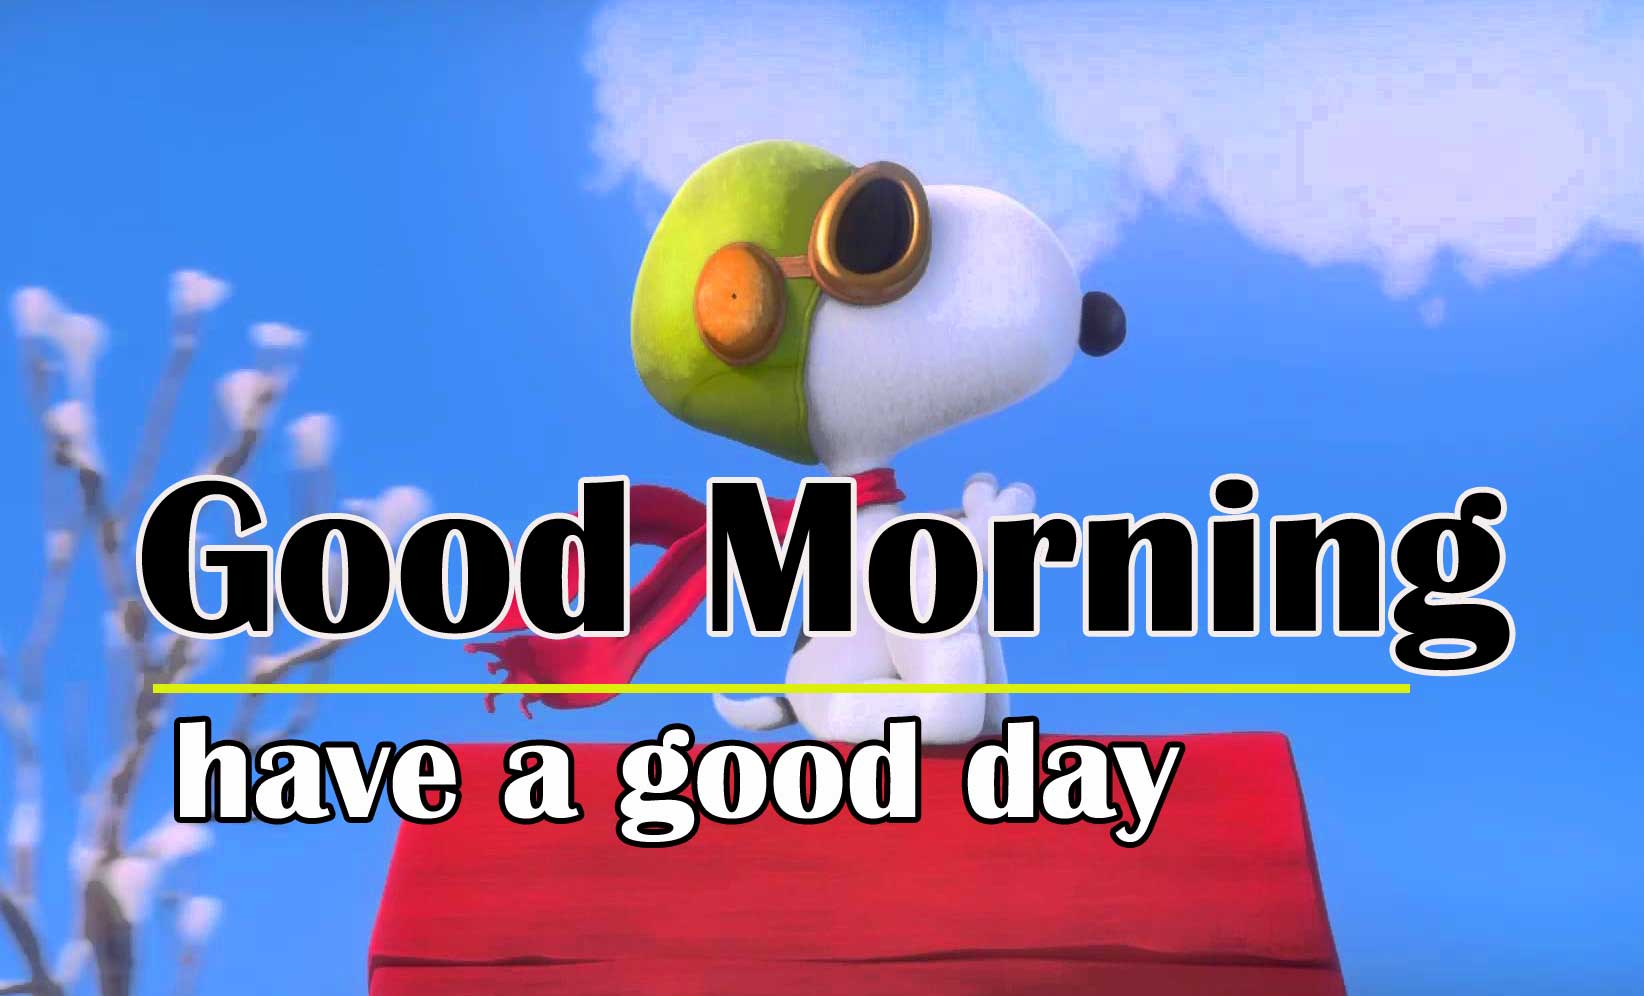 Snoopy good Morning 4